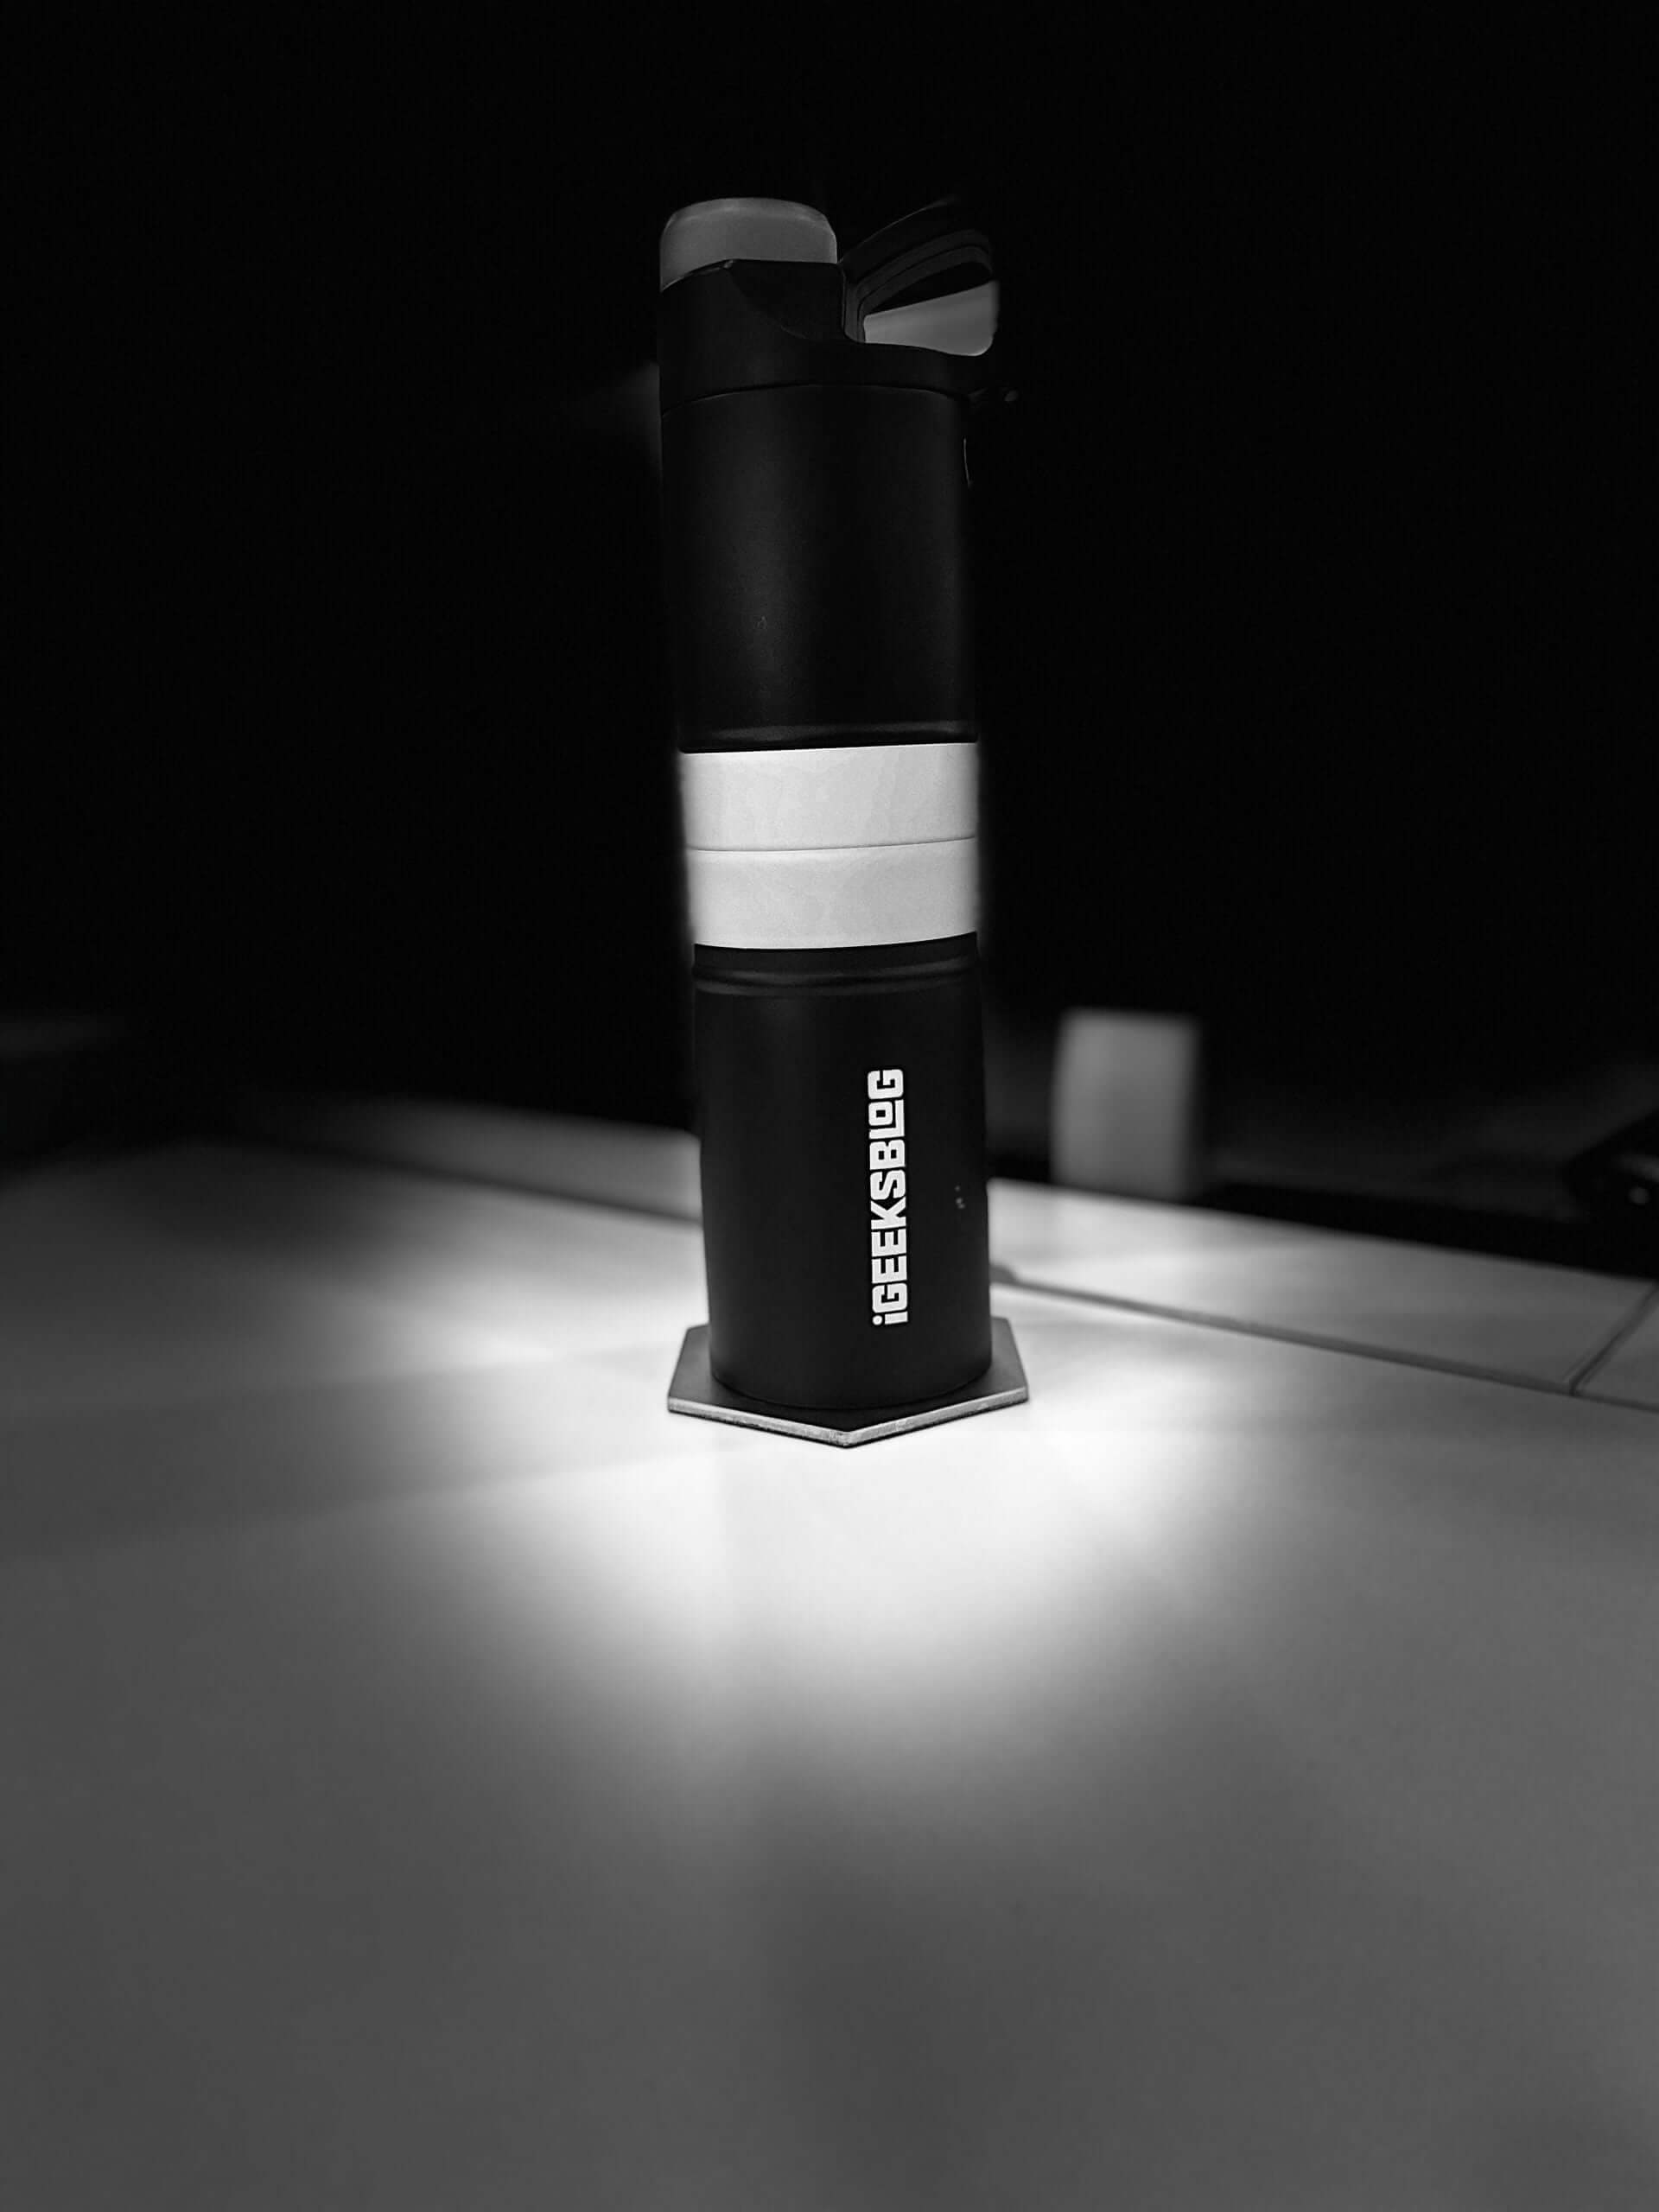 click photo with stage light mono effect on iphone